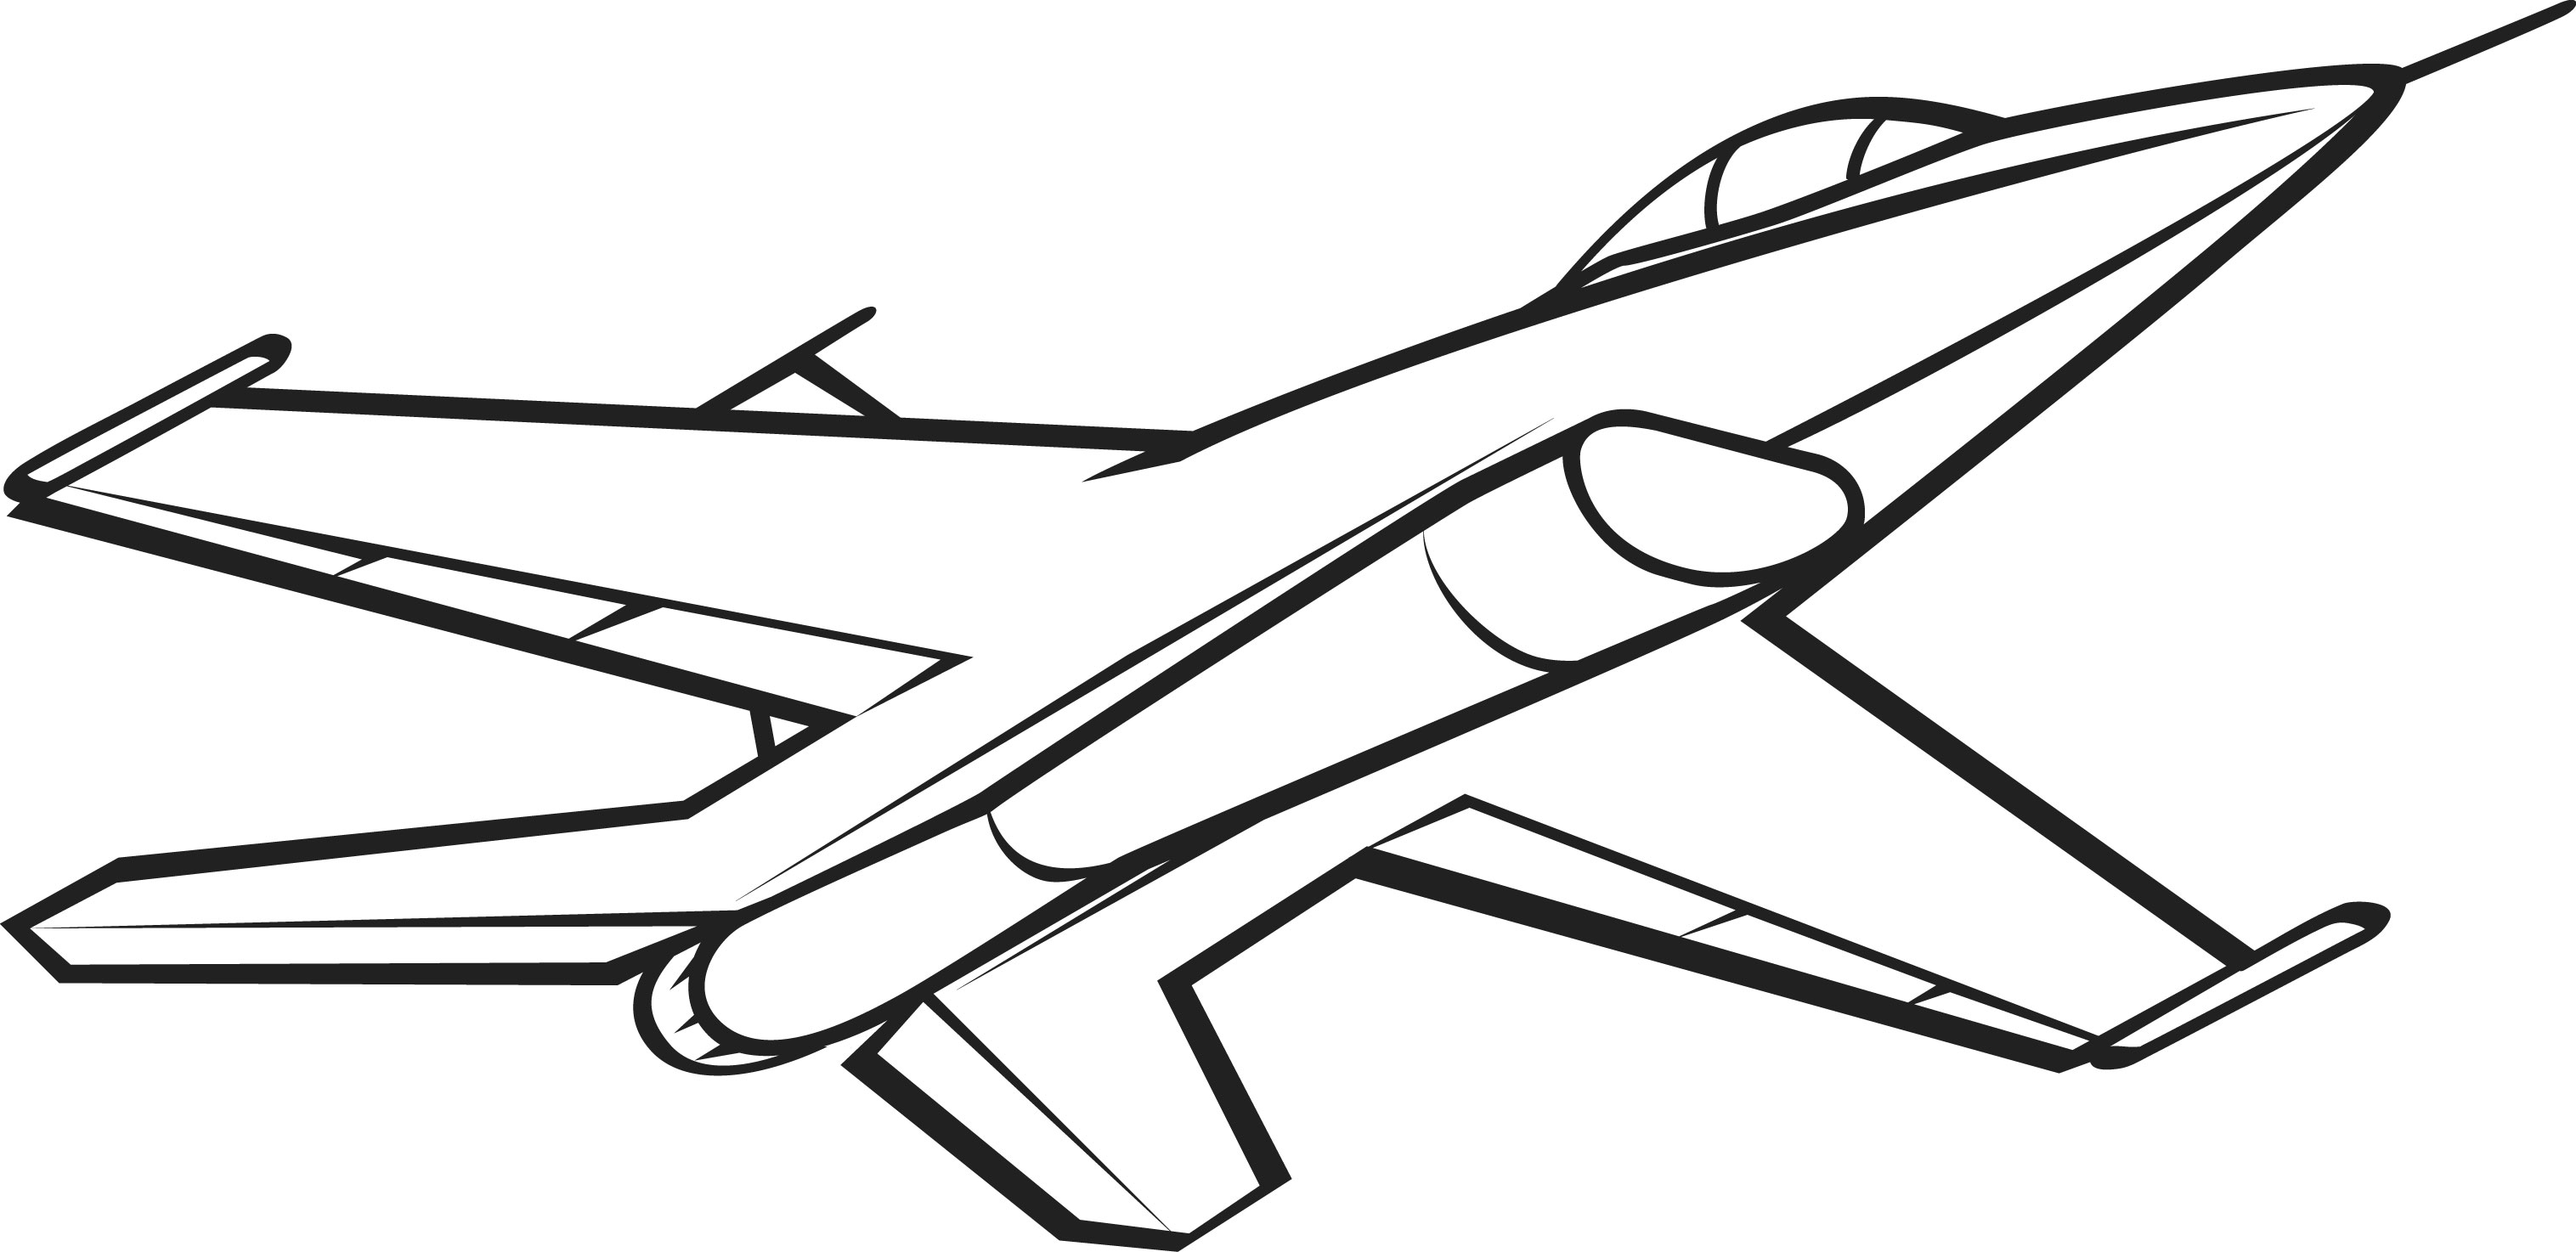 3032x1474 Drawn Aircraft Black And White